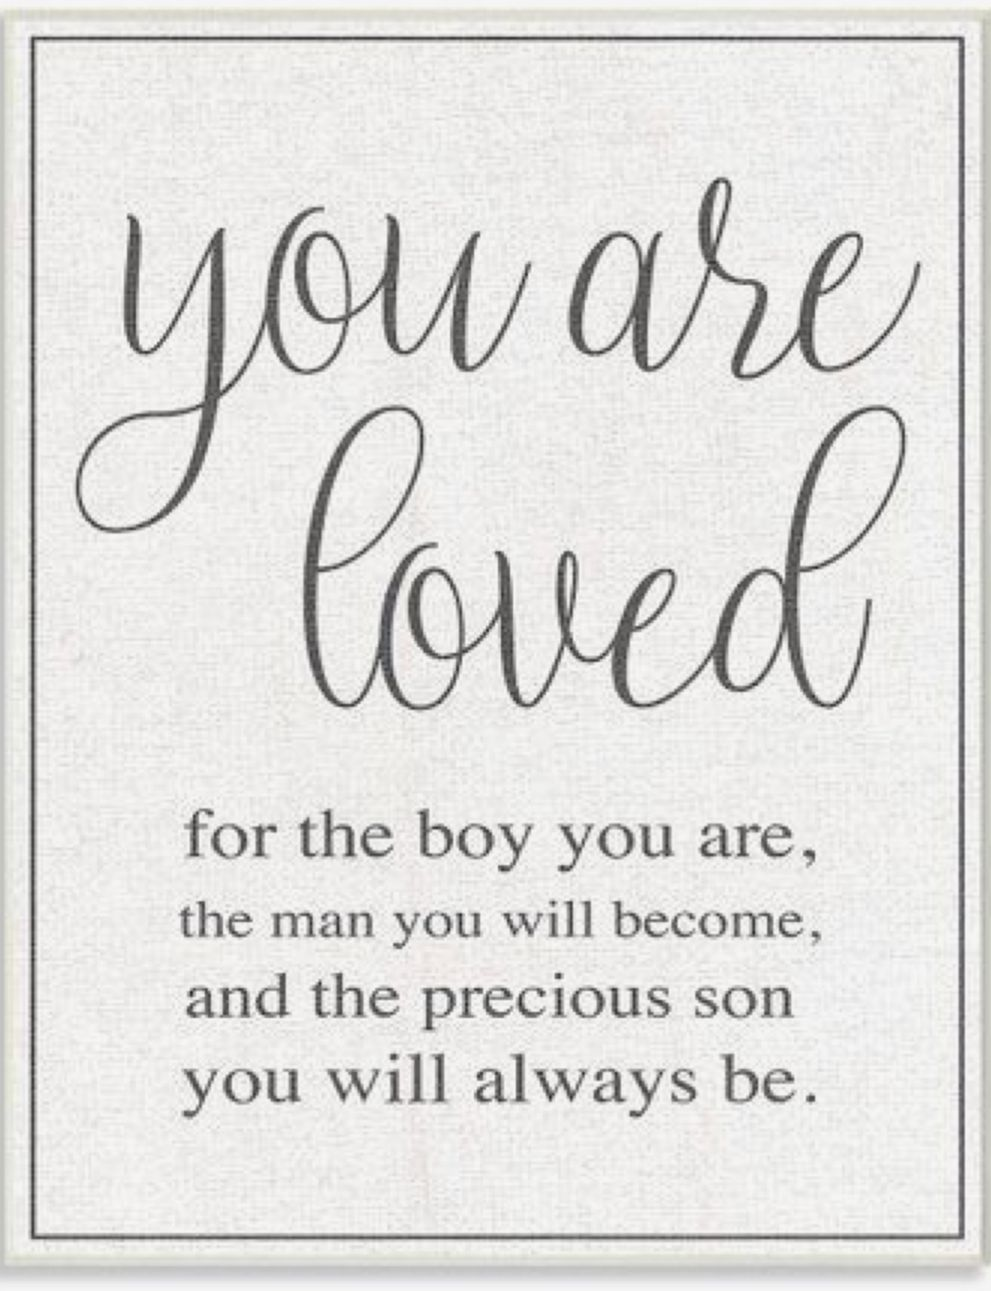 Blessed With Baby Boy Message : blessed, message, Austin, Aundre, August, We're, Blessed, Again,, Fourth, Final, Beautiful,, Happy,, Healthy, Pe…, Quotes,, Quotes